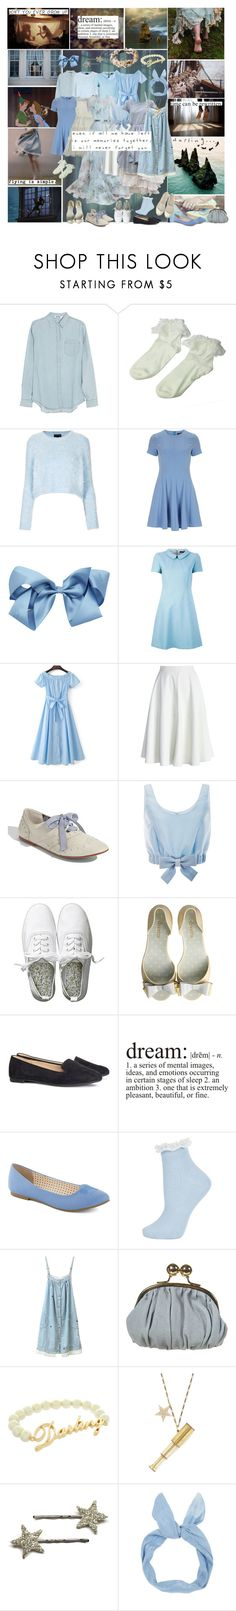 """Wendy Darling (Peter Pan)"" by smol-snowflake ❤ liked on Polyvore featuring Once Upon a Time, Disney, Acne Studios, Retrò, Topshop, Dorothy Perkins, STELLA McCARTNEY, Tara Jarmon, WithChic and Jenny Packham"